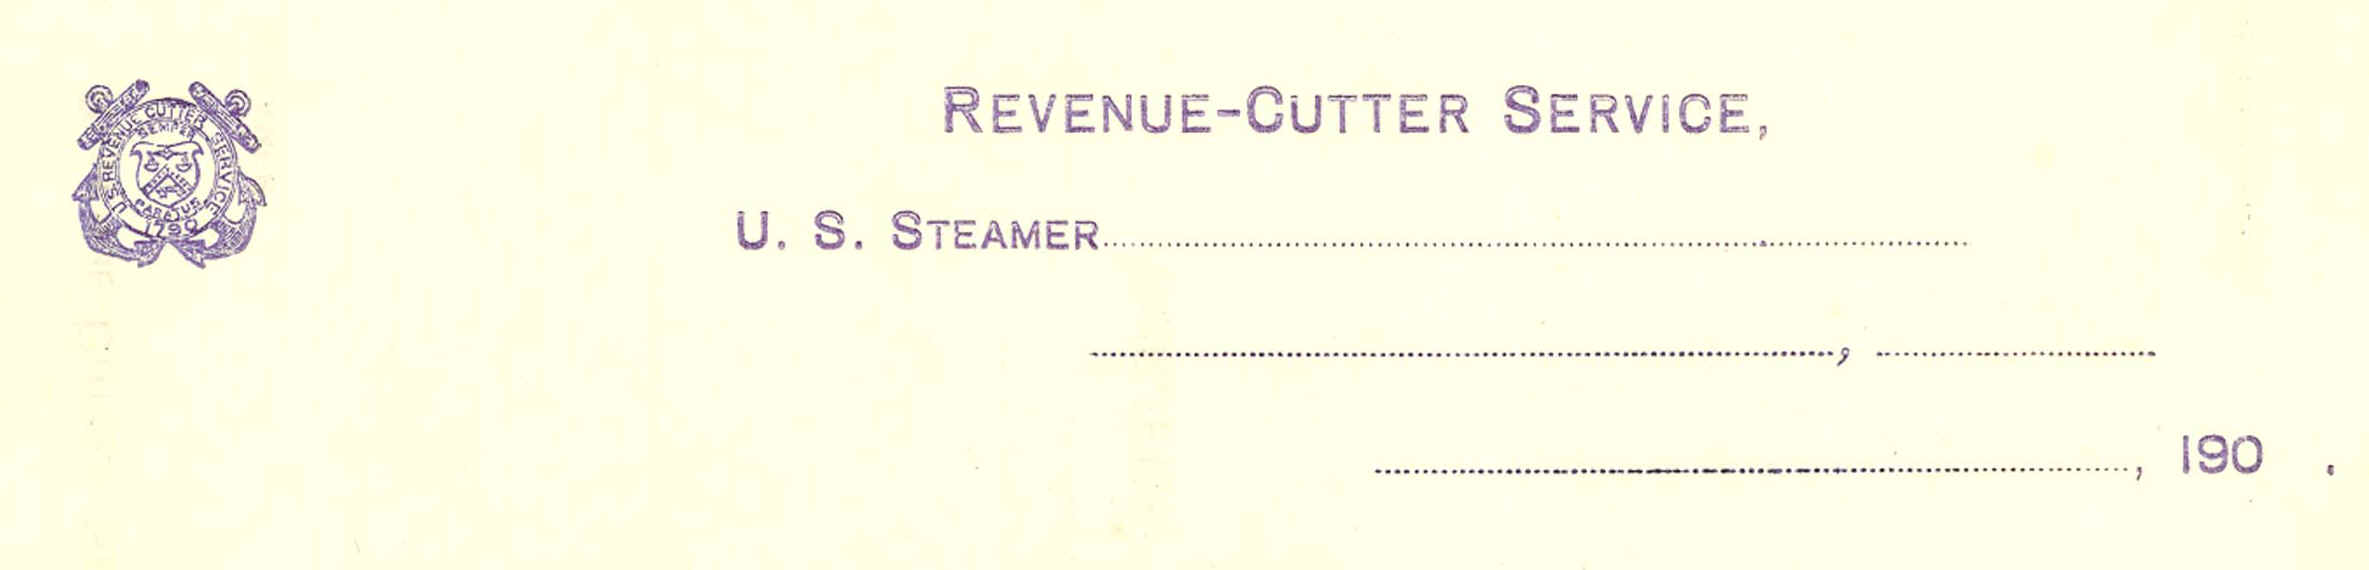 (stationary) U. S. REVENUE CUTTER SERVICE LETTER SHEETS. Cover Sheet  Includes Revenue Cutter Service Letterhead With Subject Information On Back.